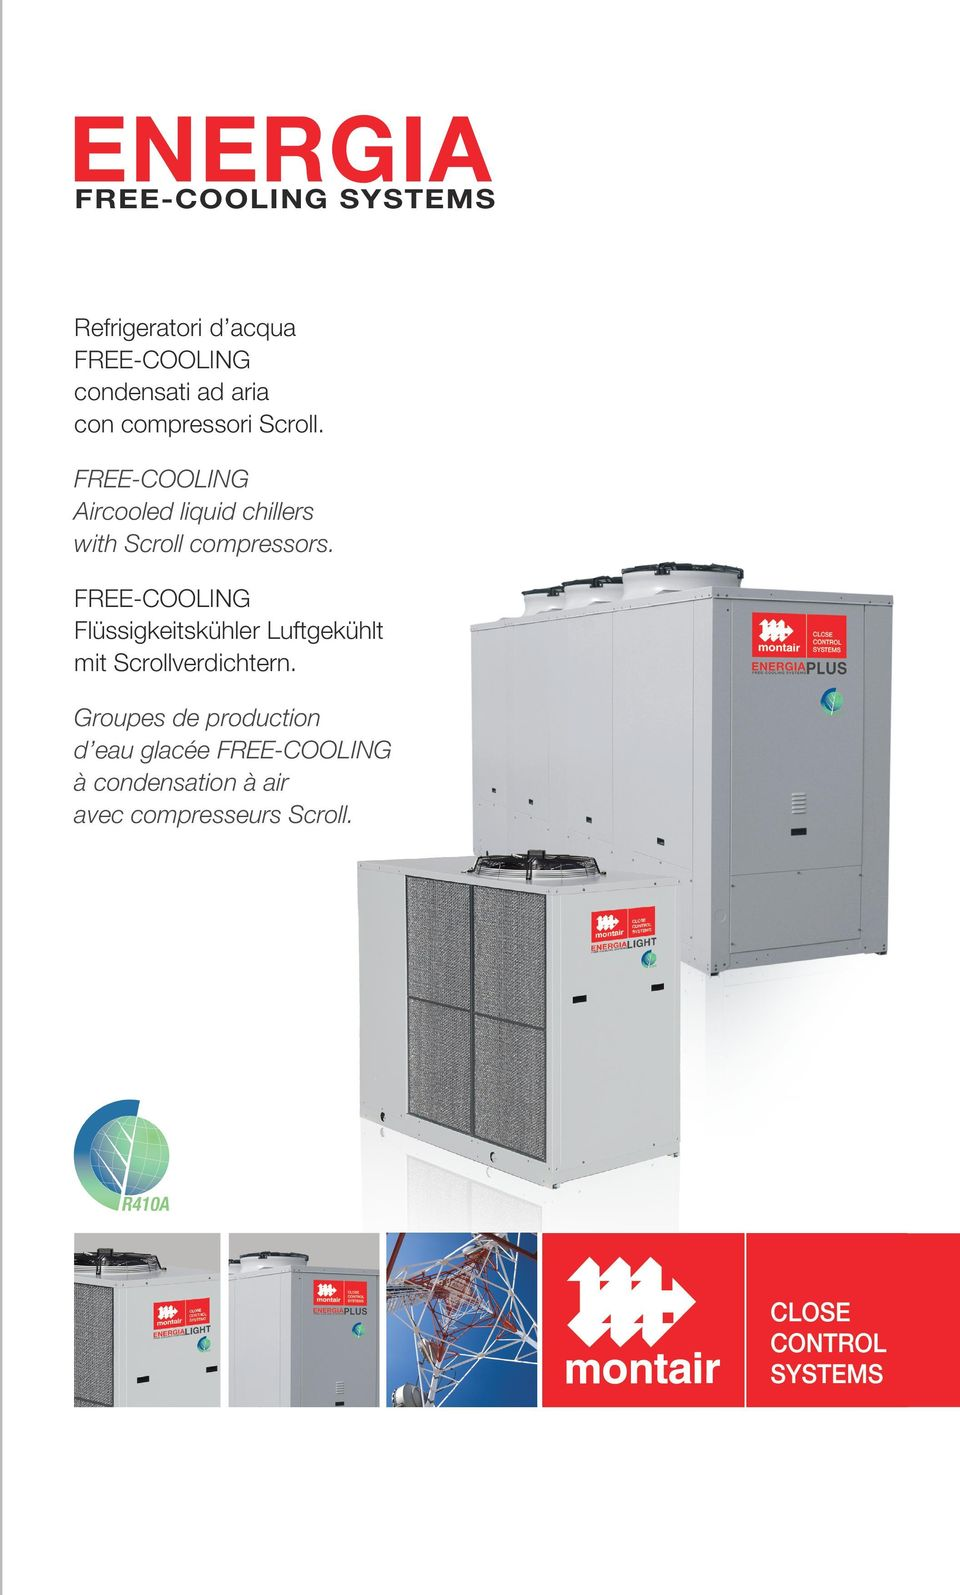 FREE-COOLING Aircooled liquid chillers with Scroll compressors.